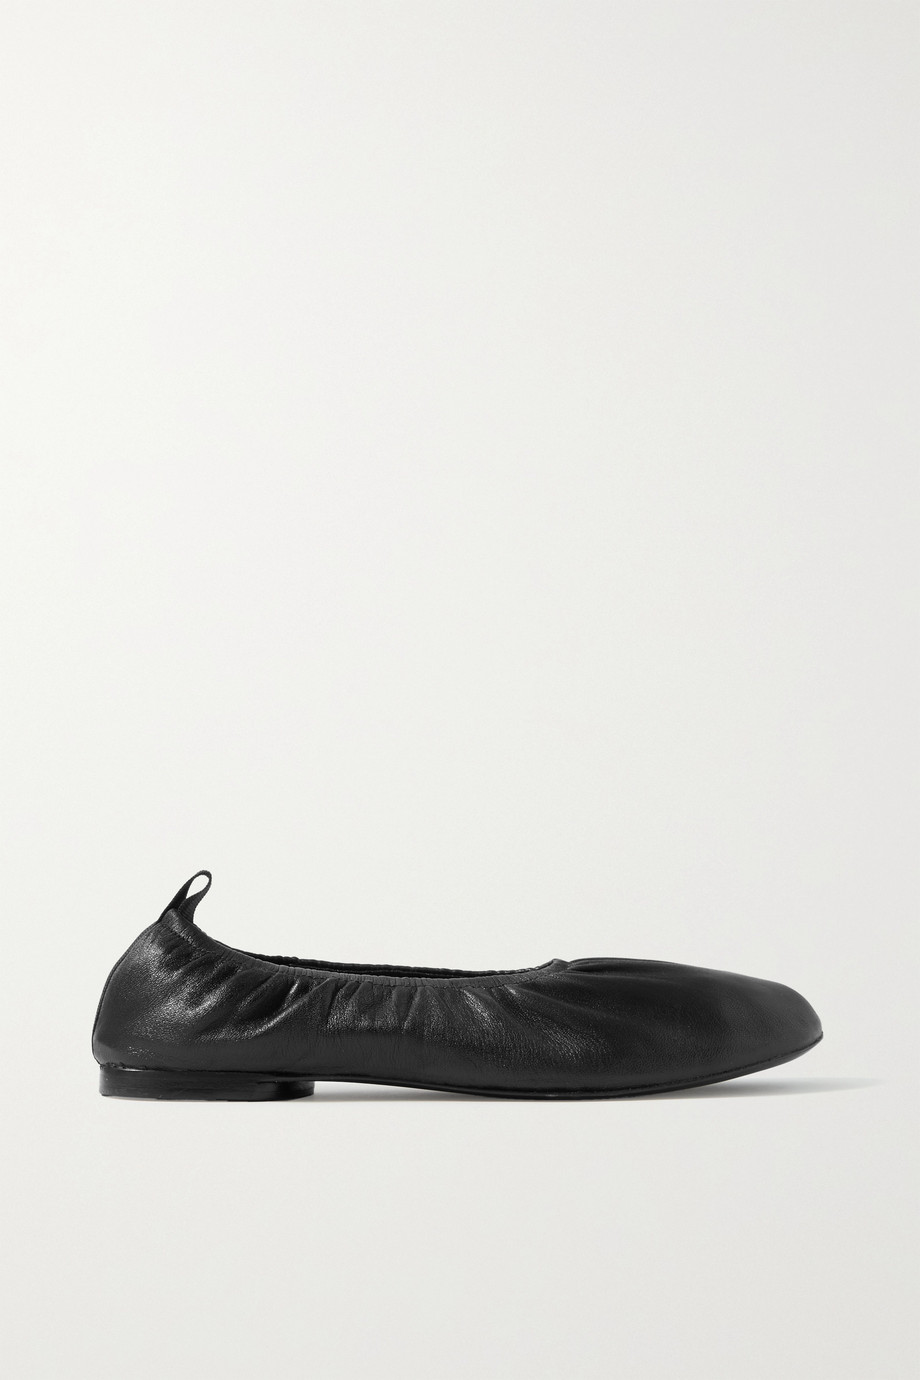 RAG & BONE Elly leather ballet flats